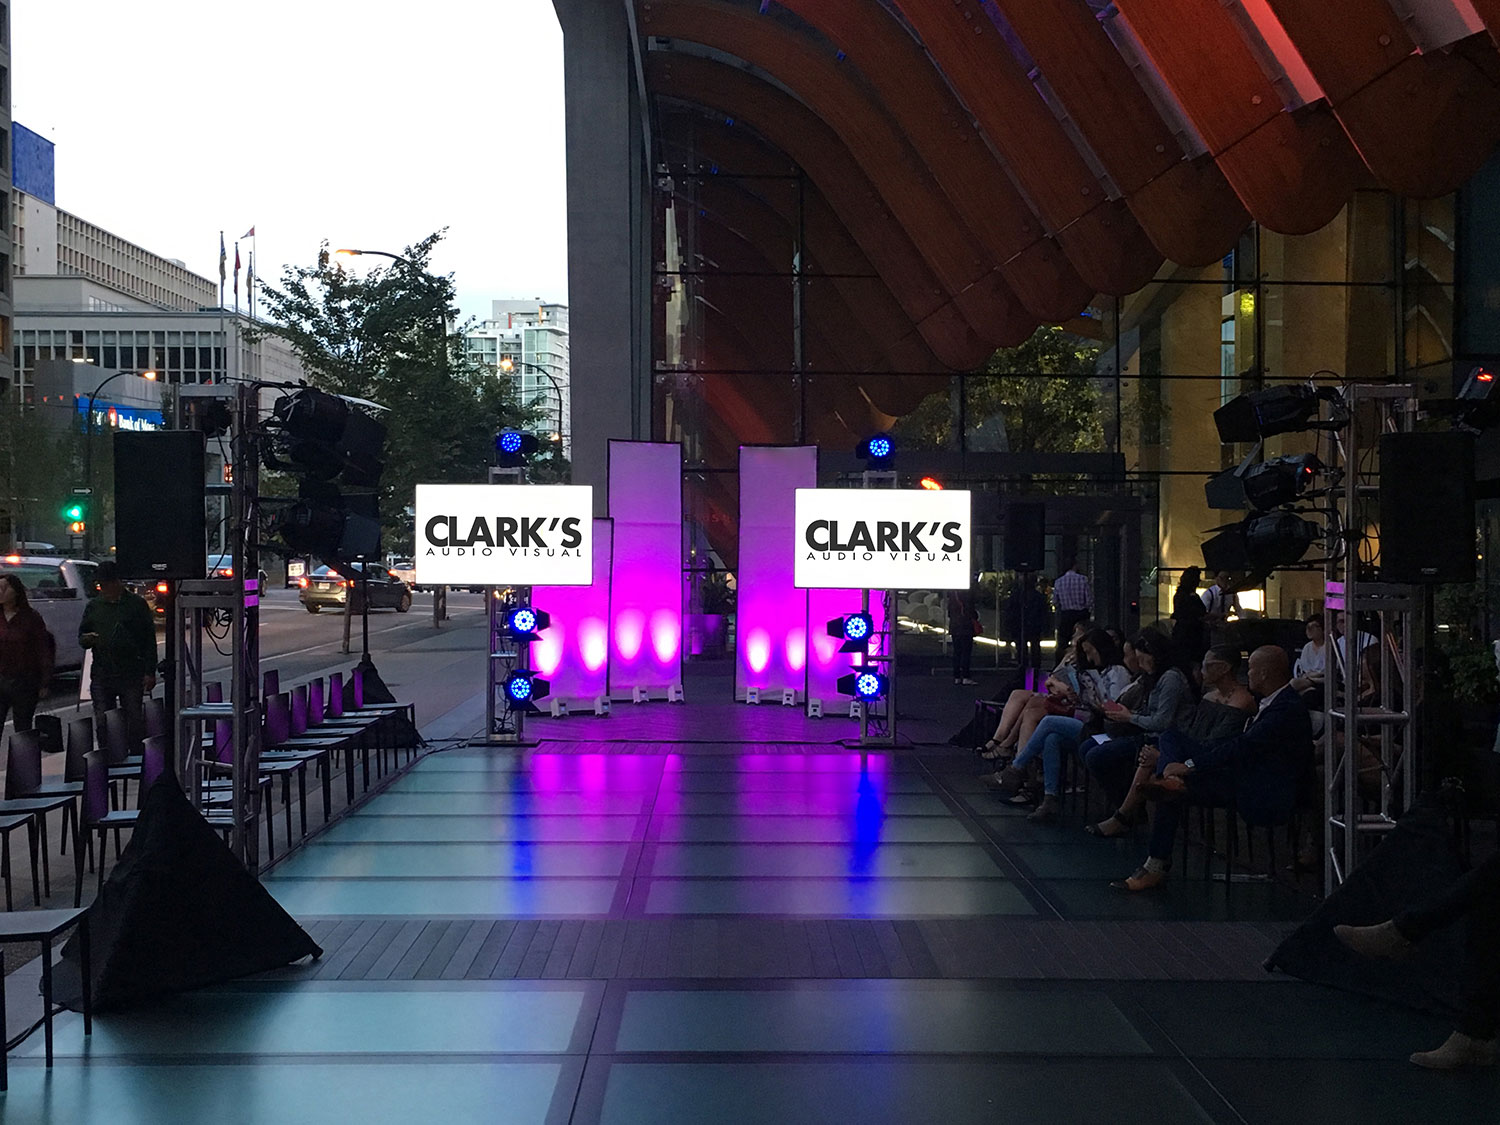 Clark's Audio Visual Fashion Show